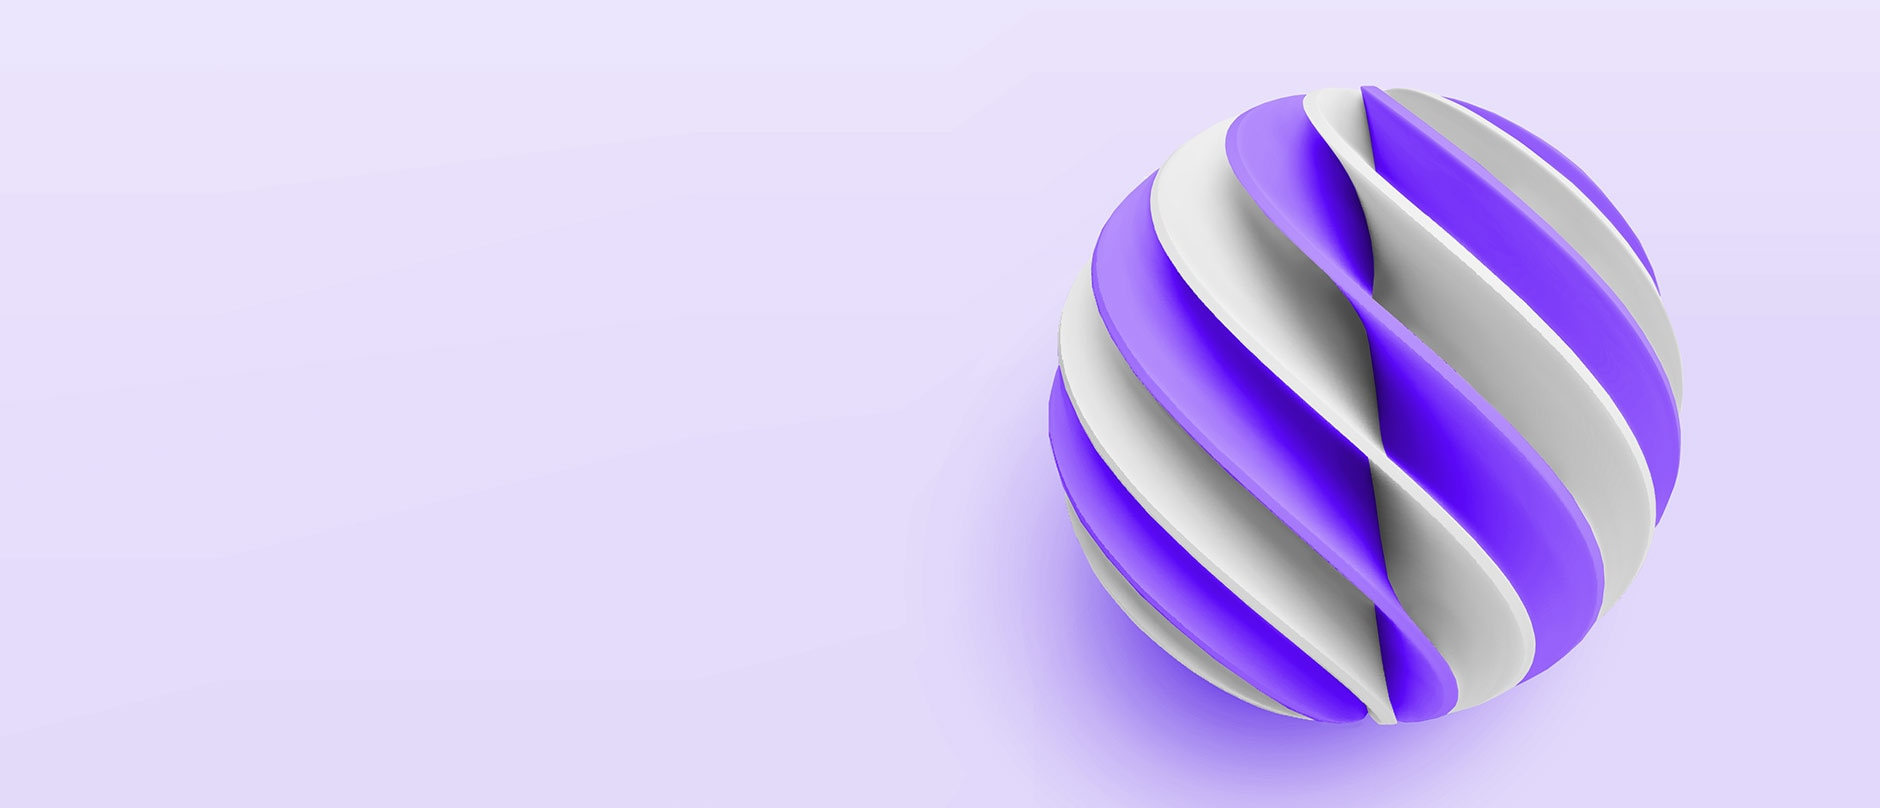 sphere made up of white and purple streaks on a purple background